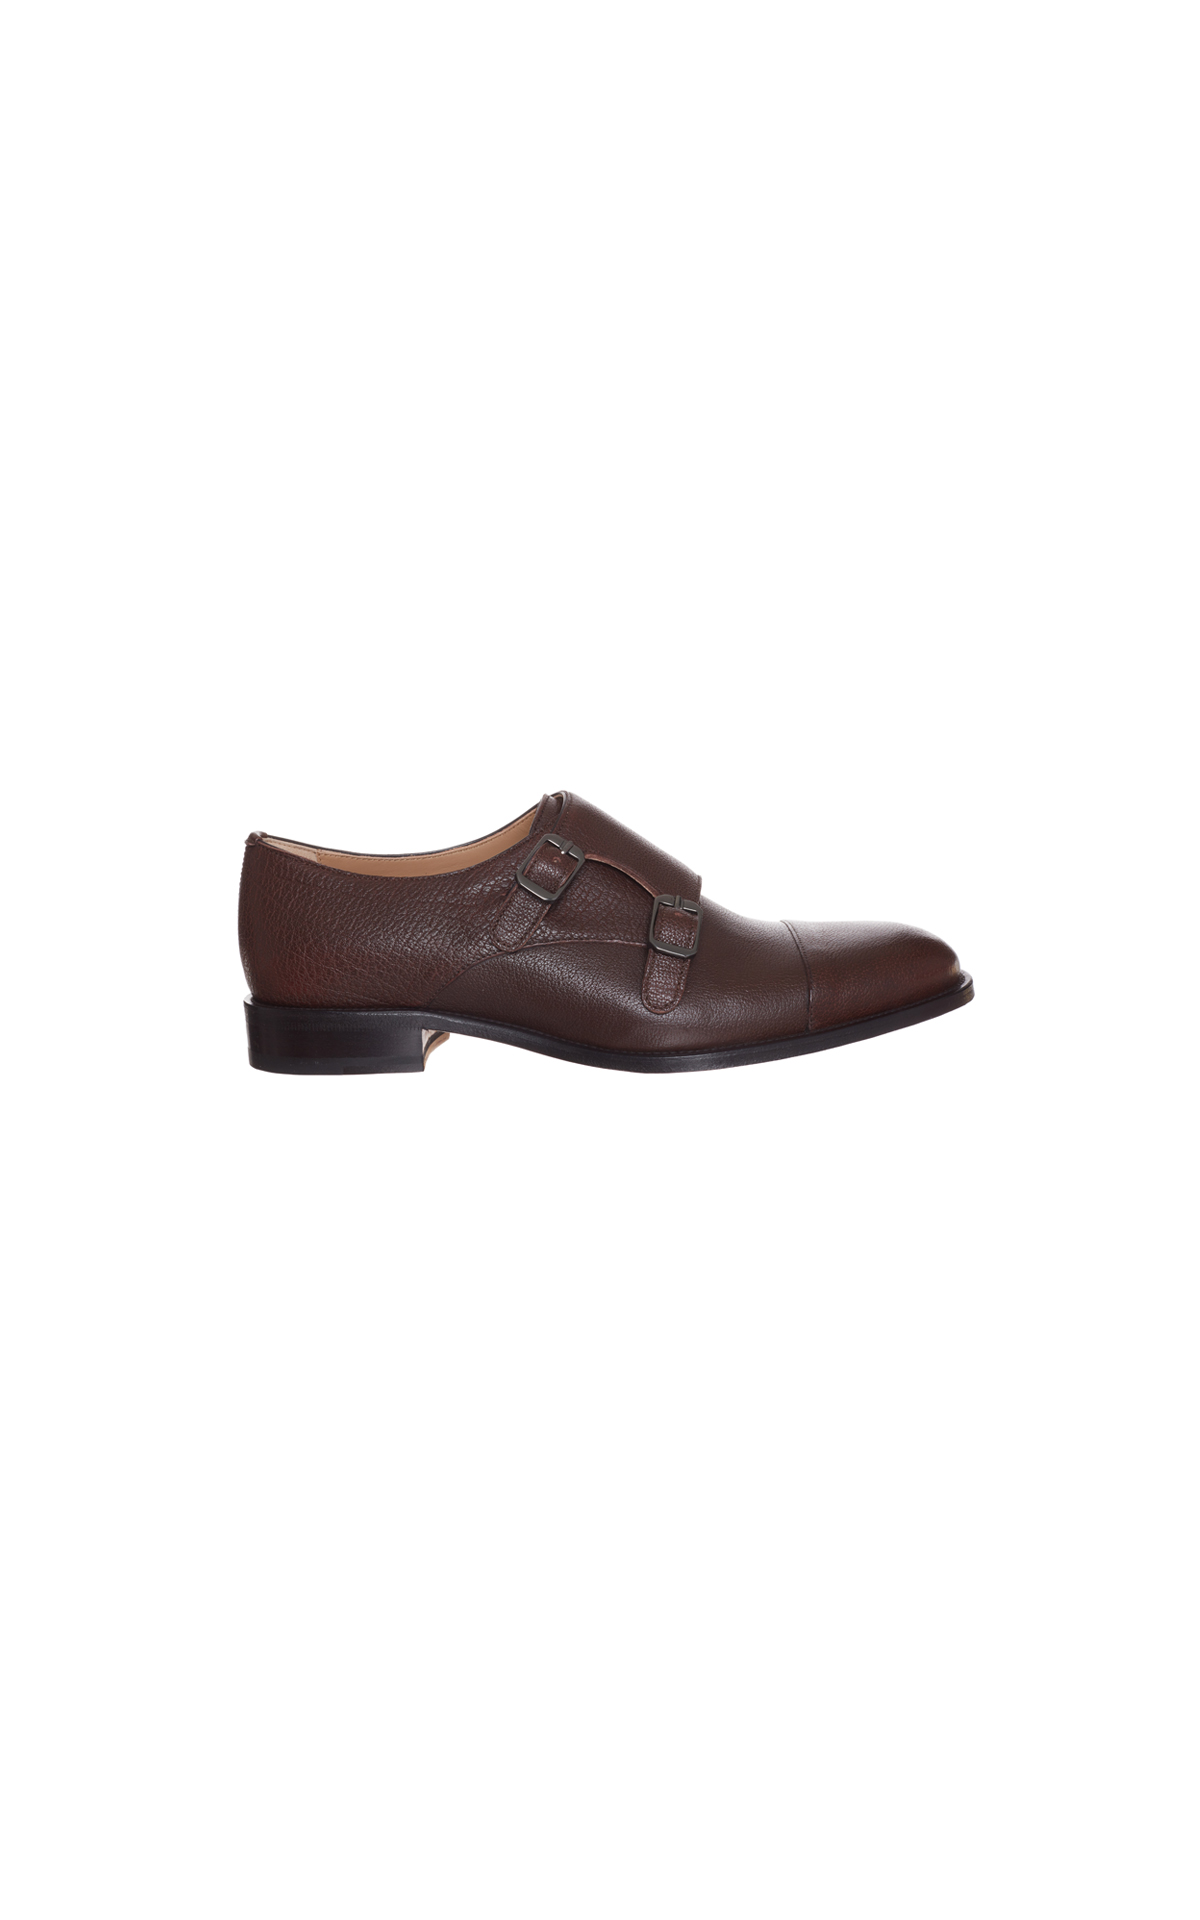 Brioni Double monk shoes from Bicester Village